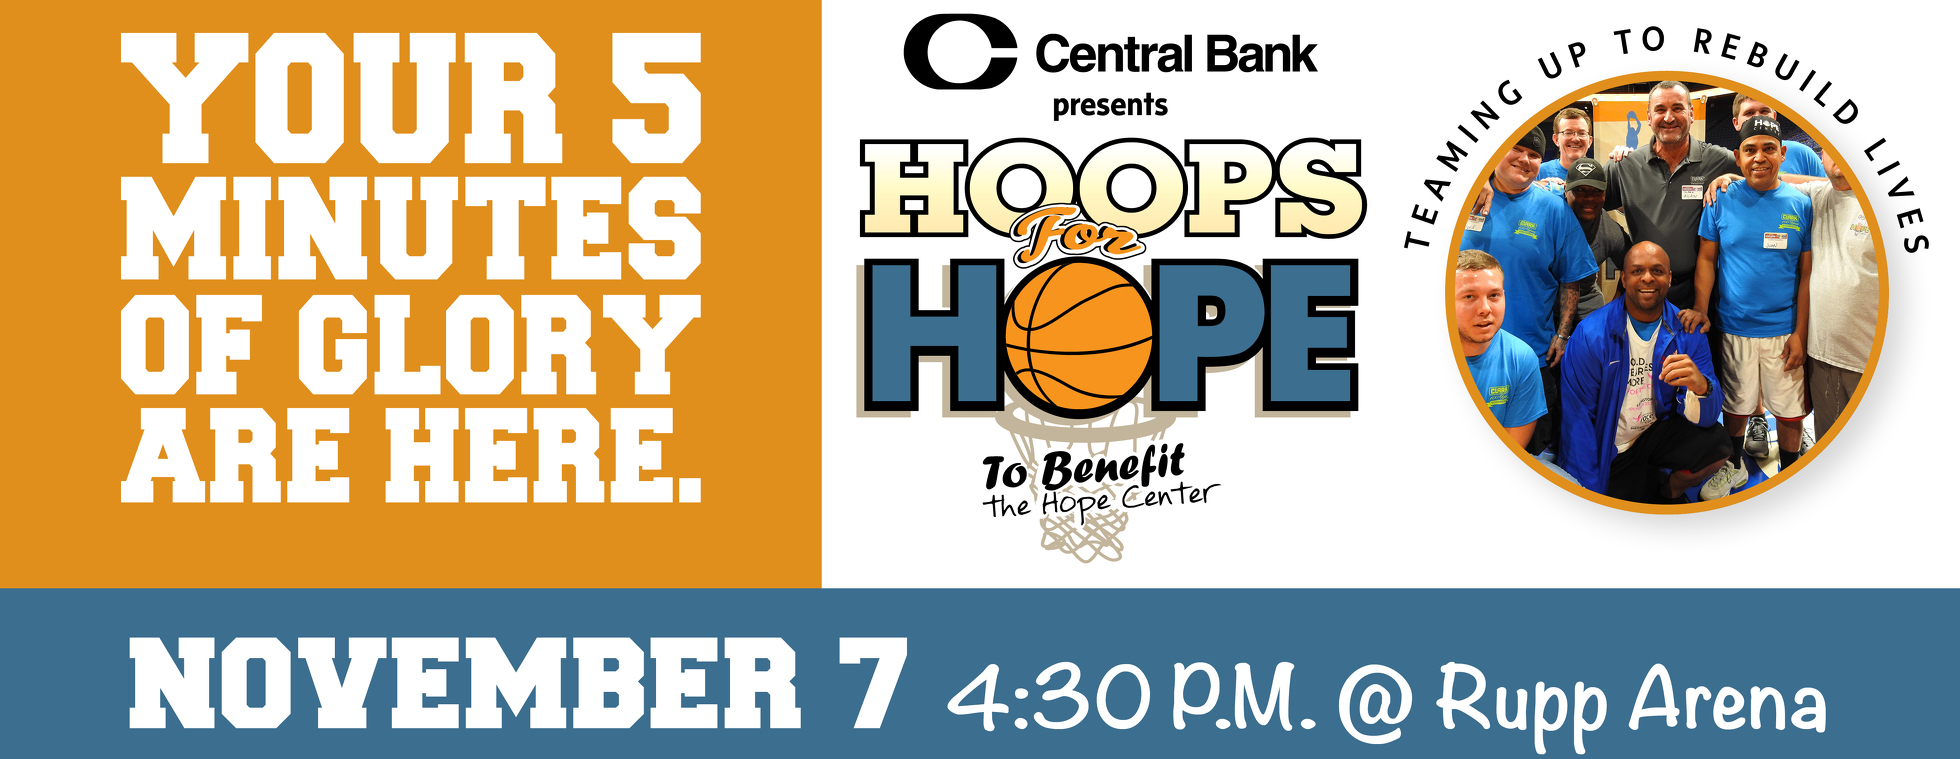 2019 Central Bank Hoops for Hope